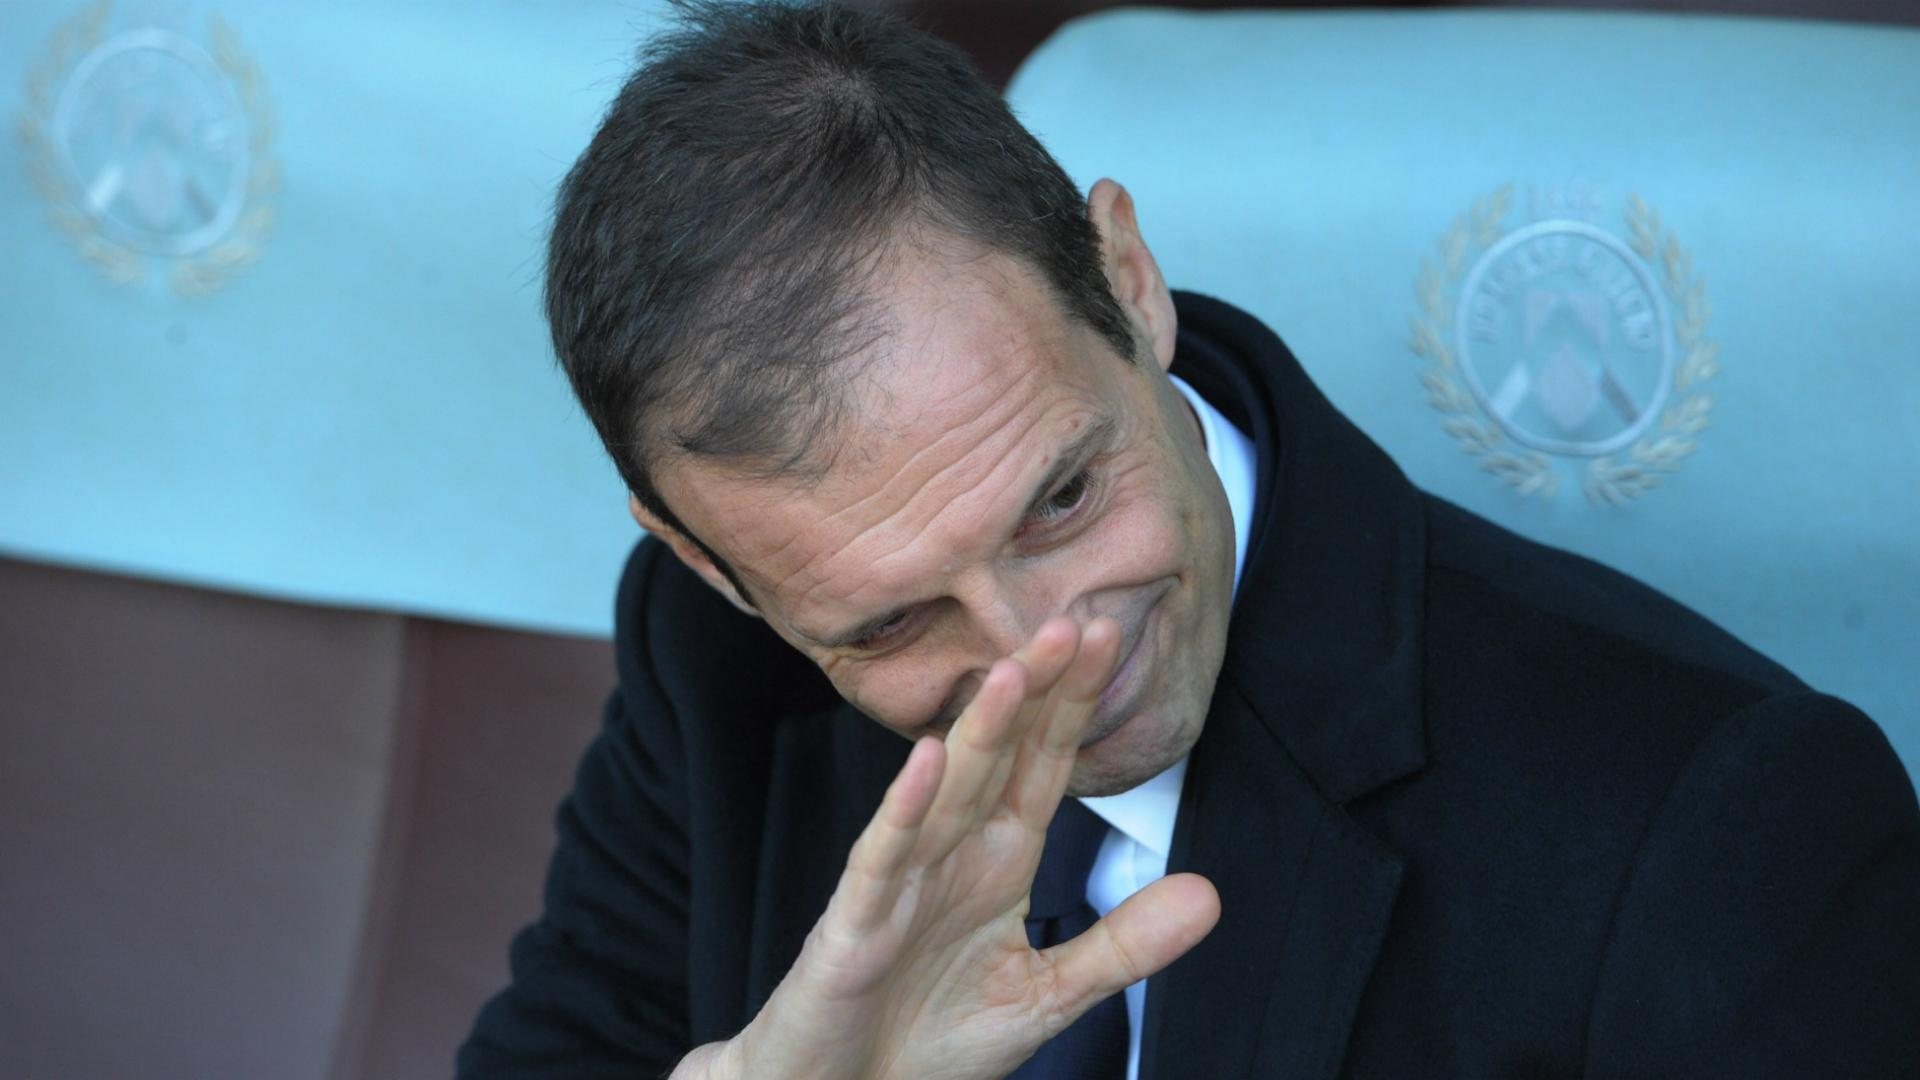 Allegri will join Chelsea, says former coach